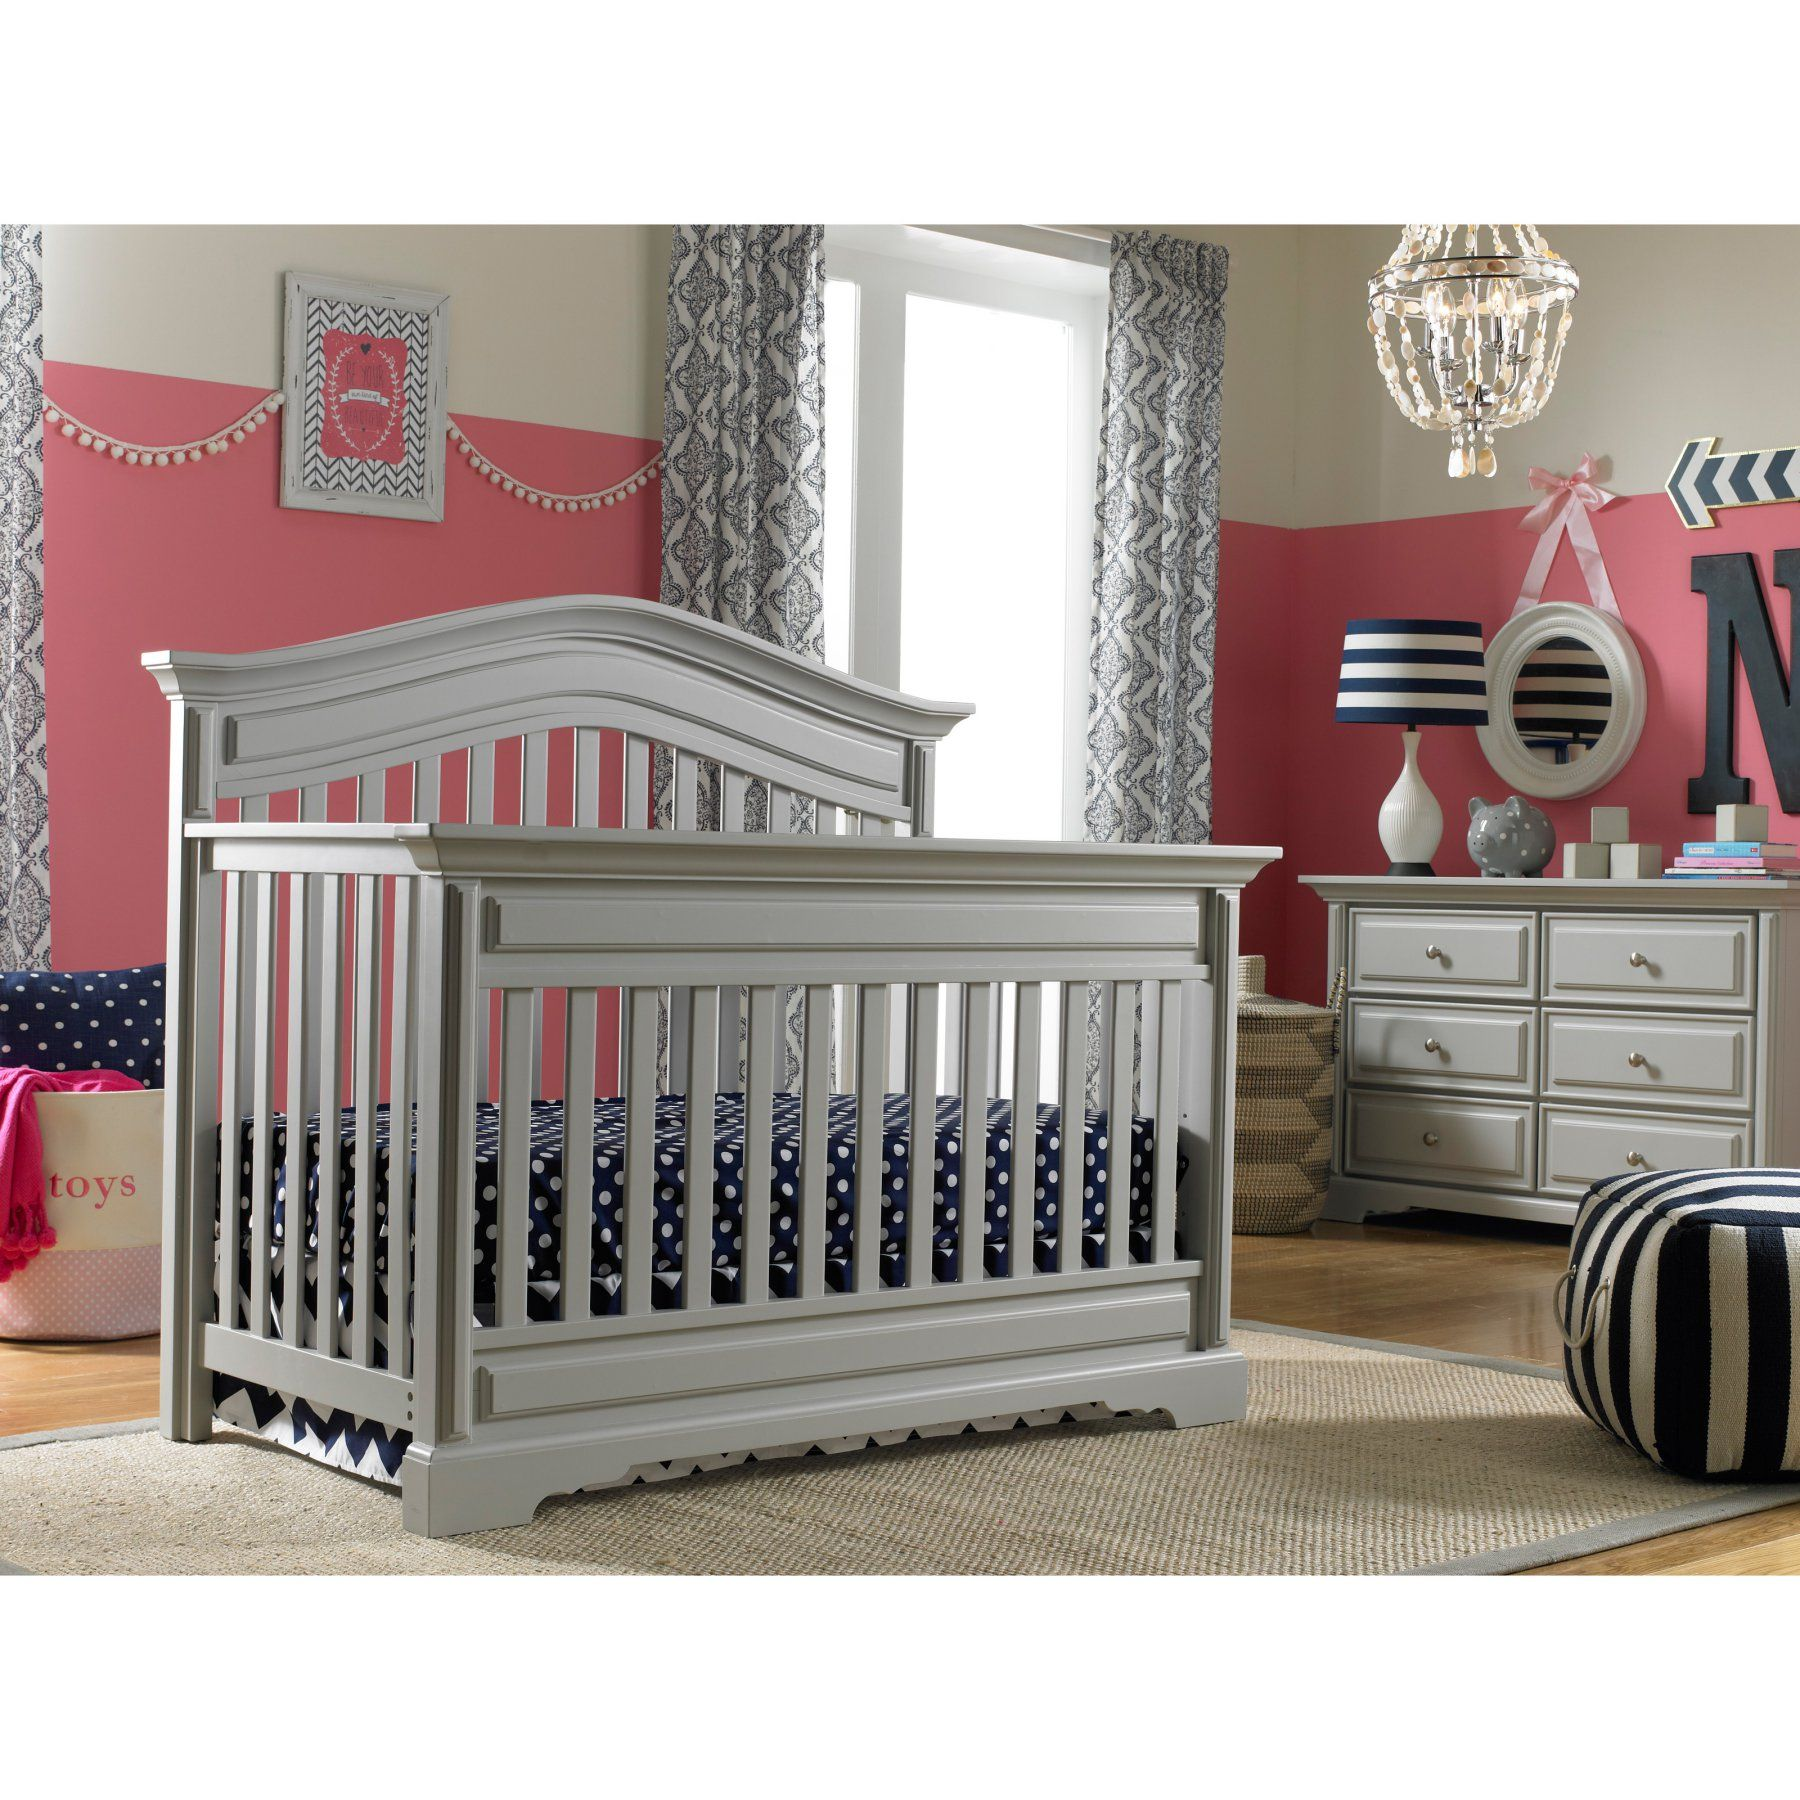 Round Crib For Sale